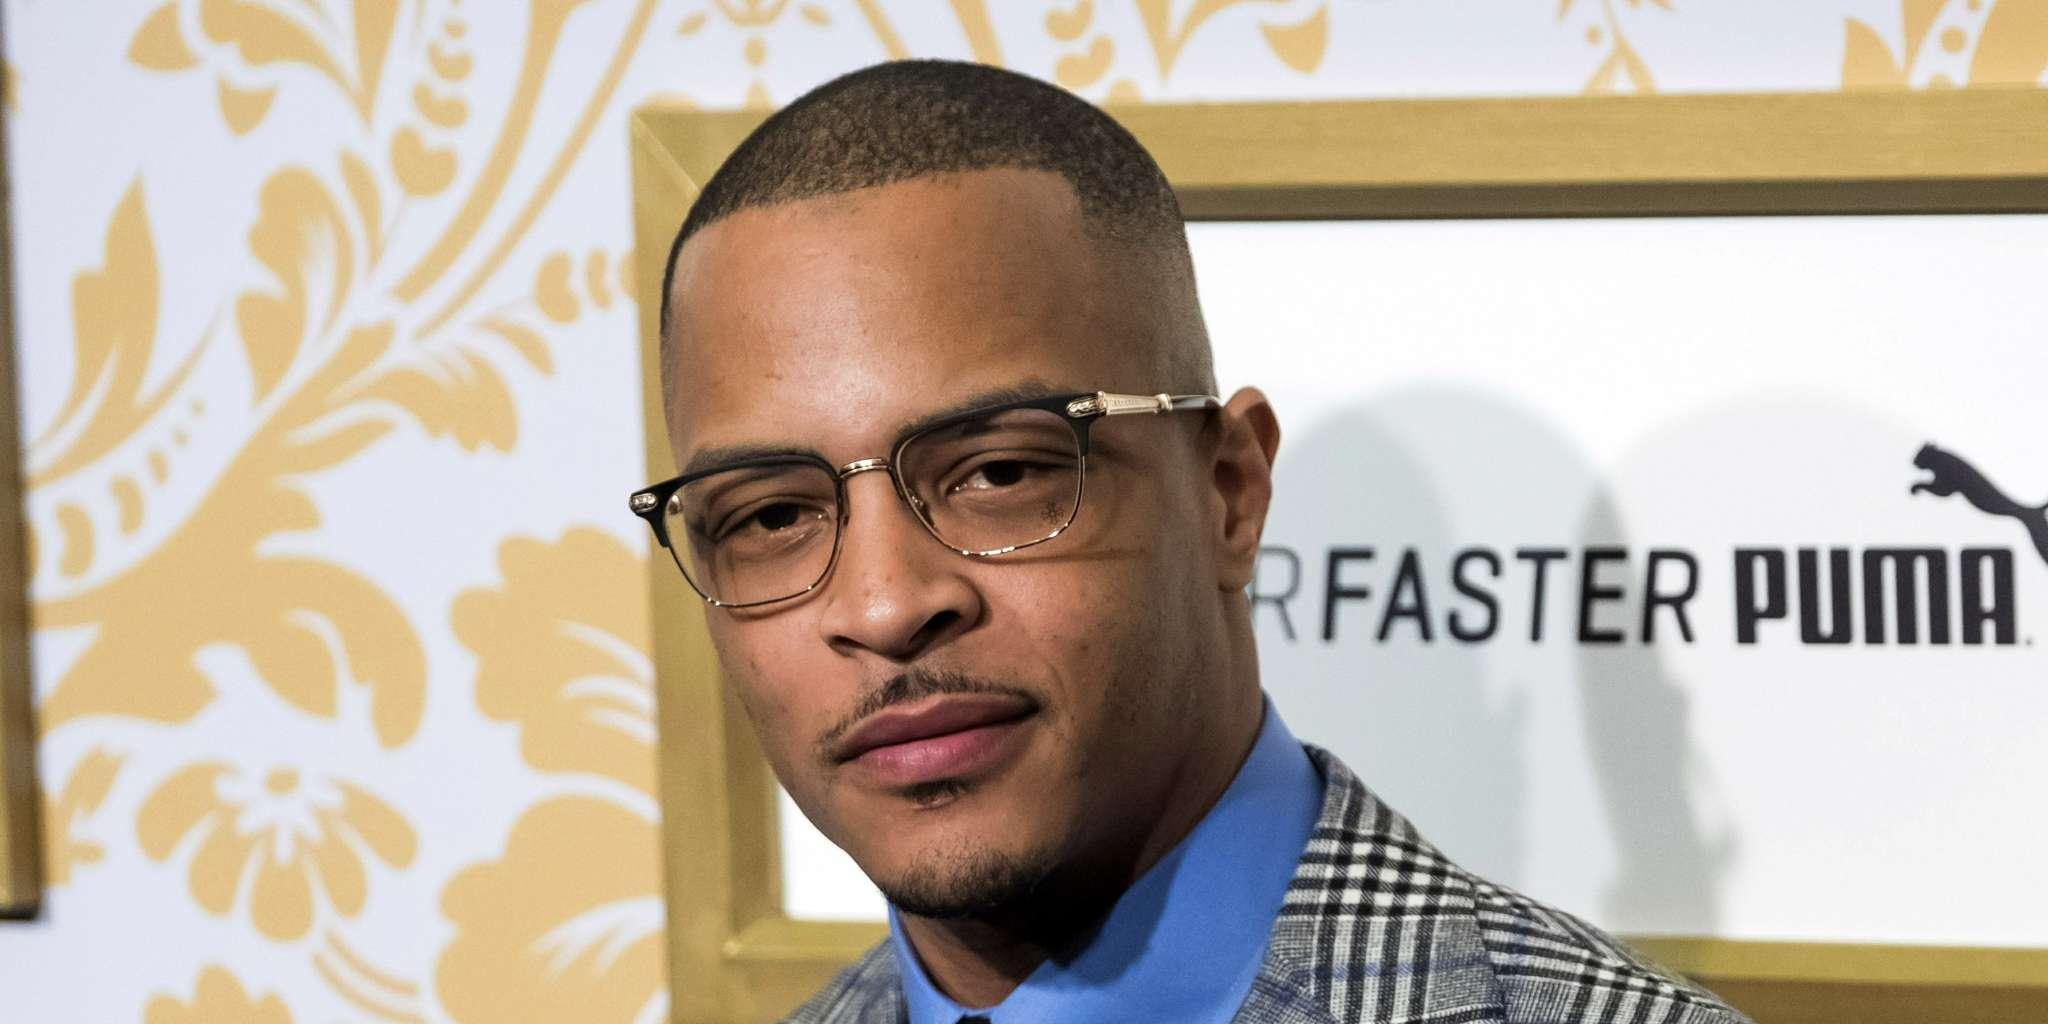 T.I.'s Announcement Has Fans Excited - See His Recommendation For Today